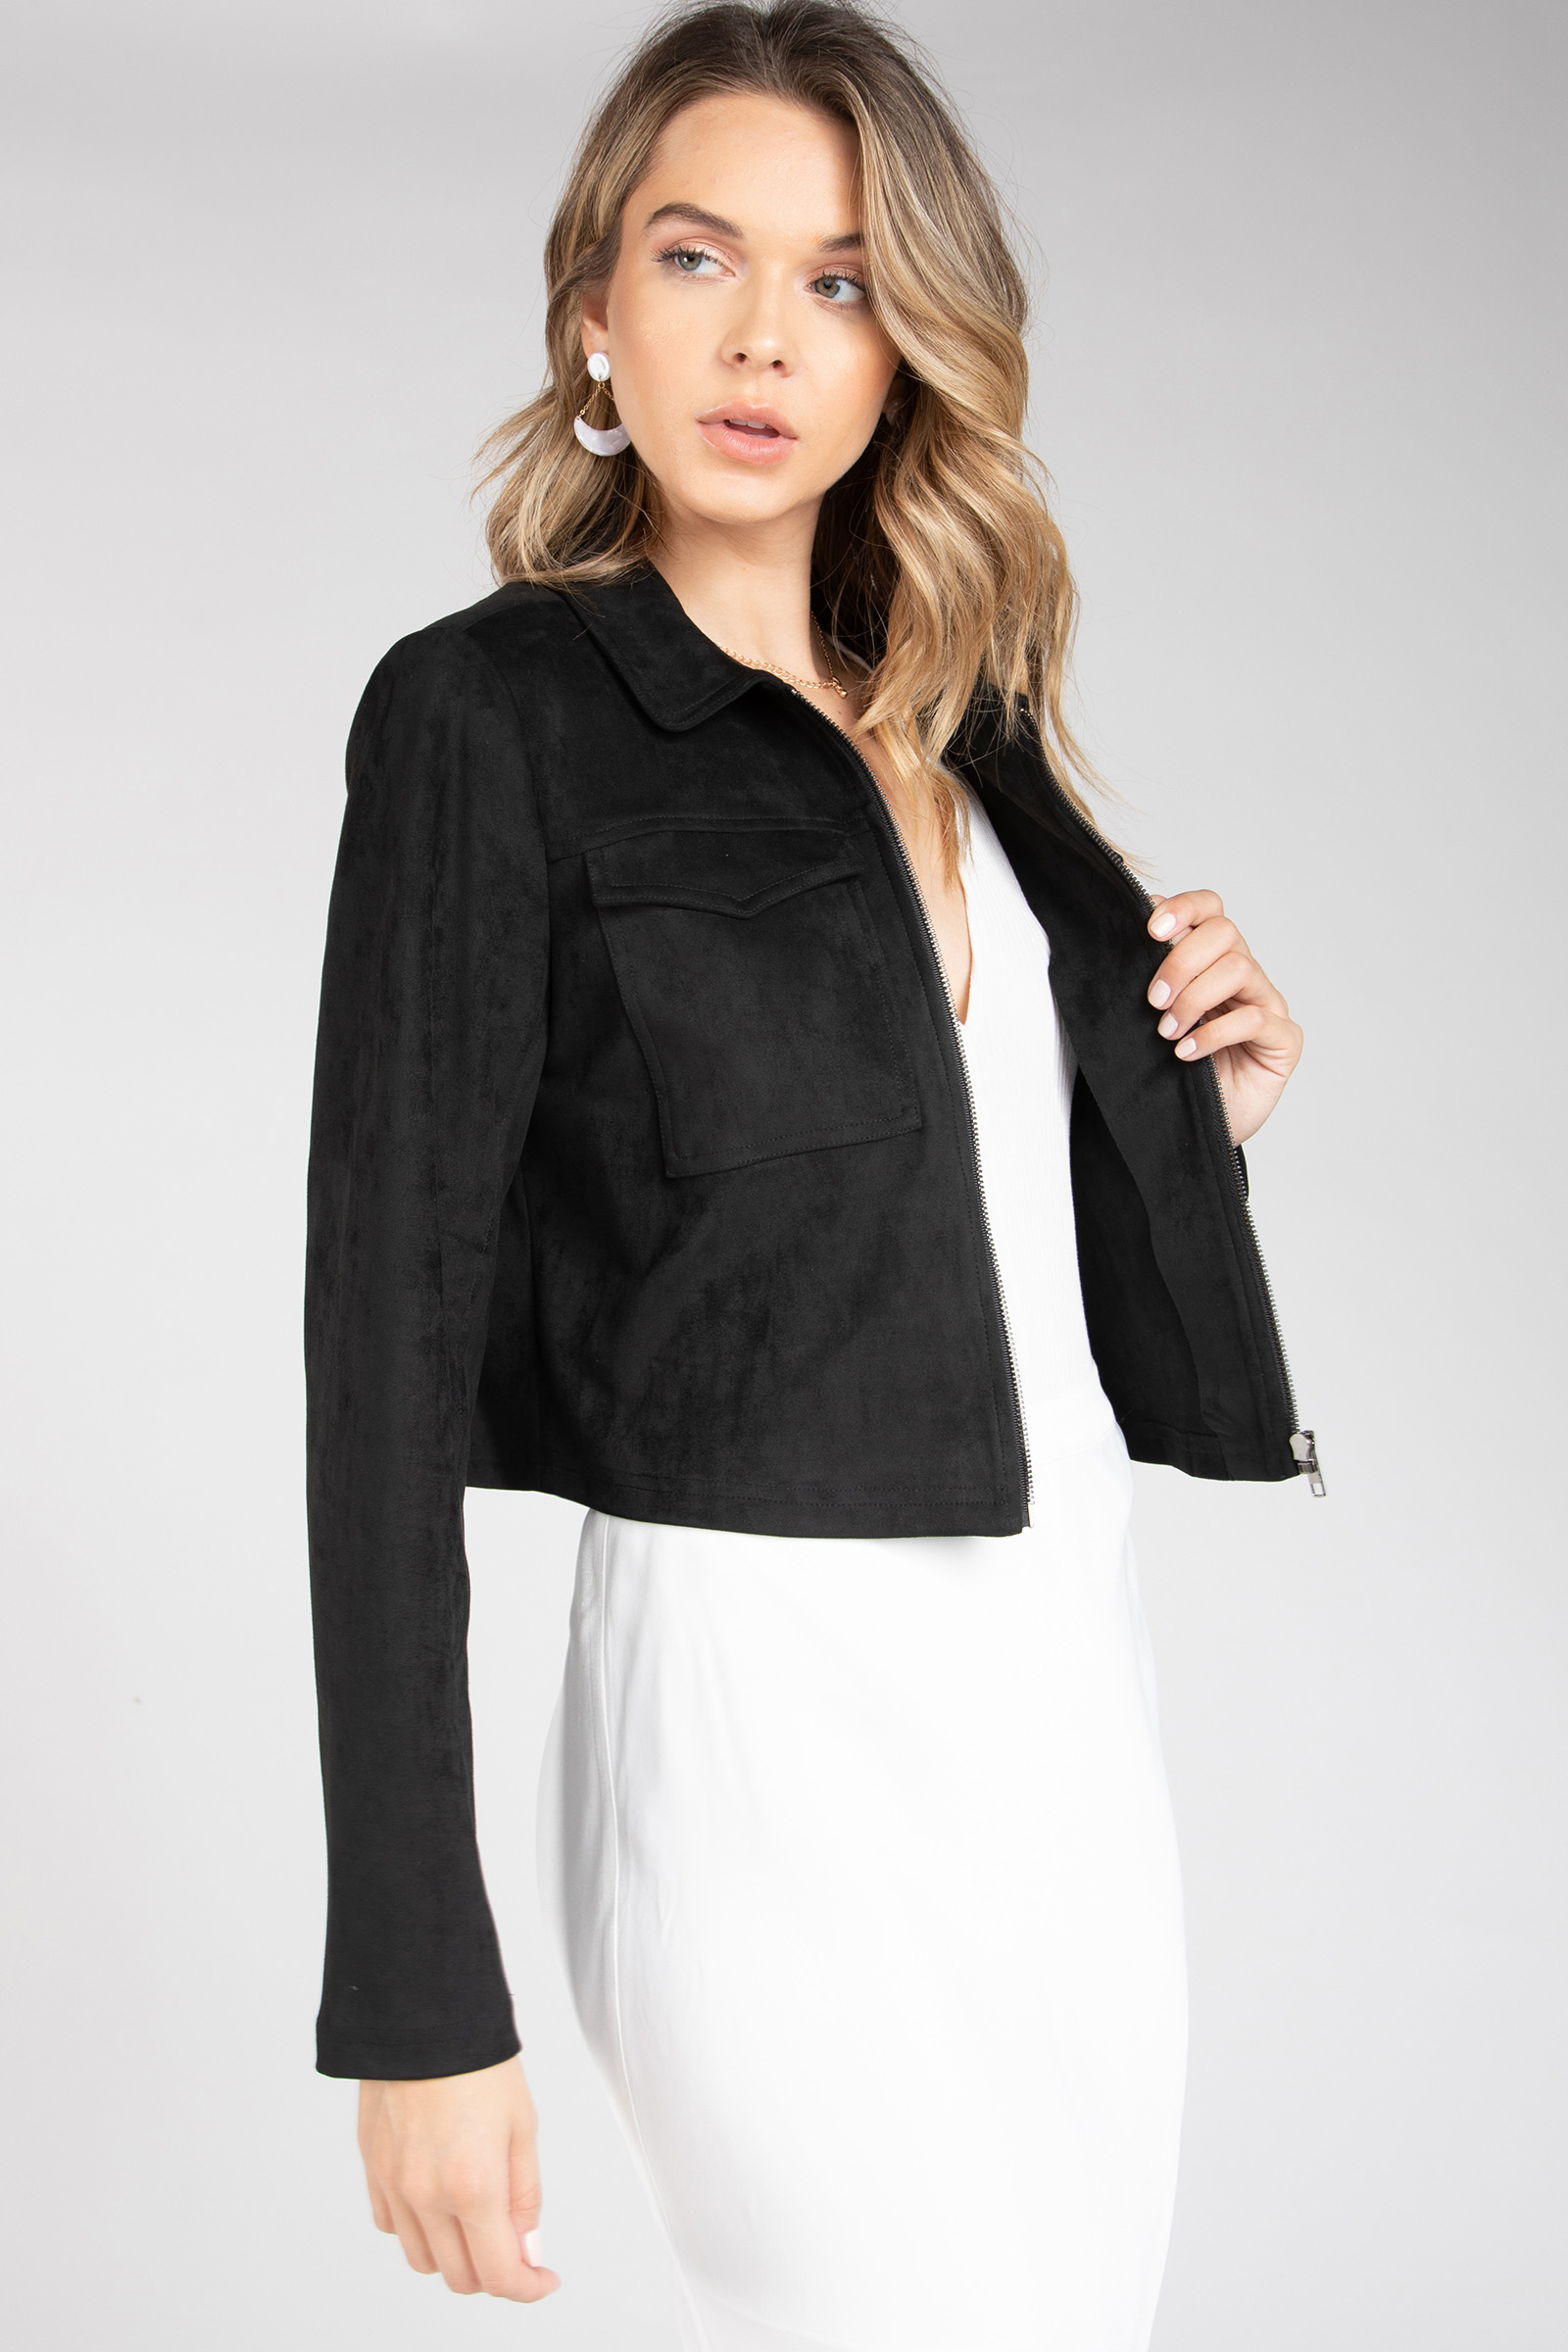 CARMEN SUEDE CROPPED JACKET